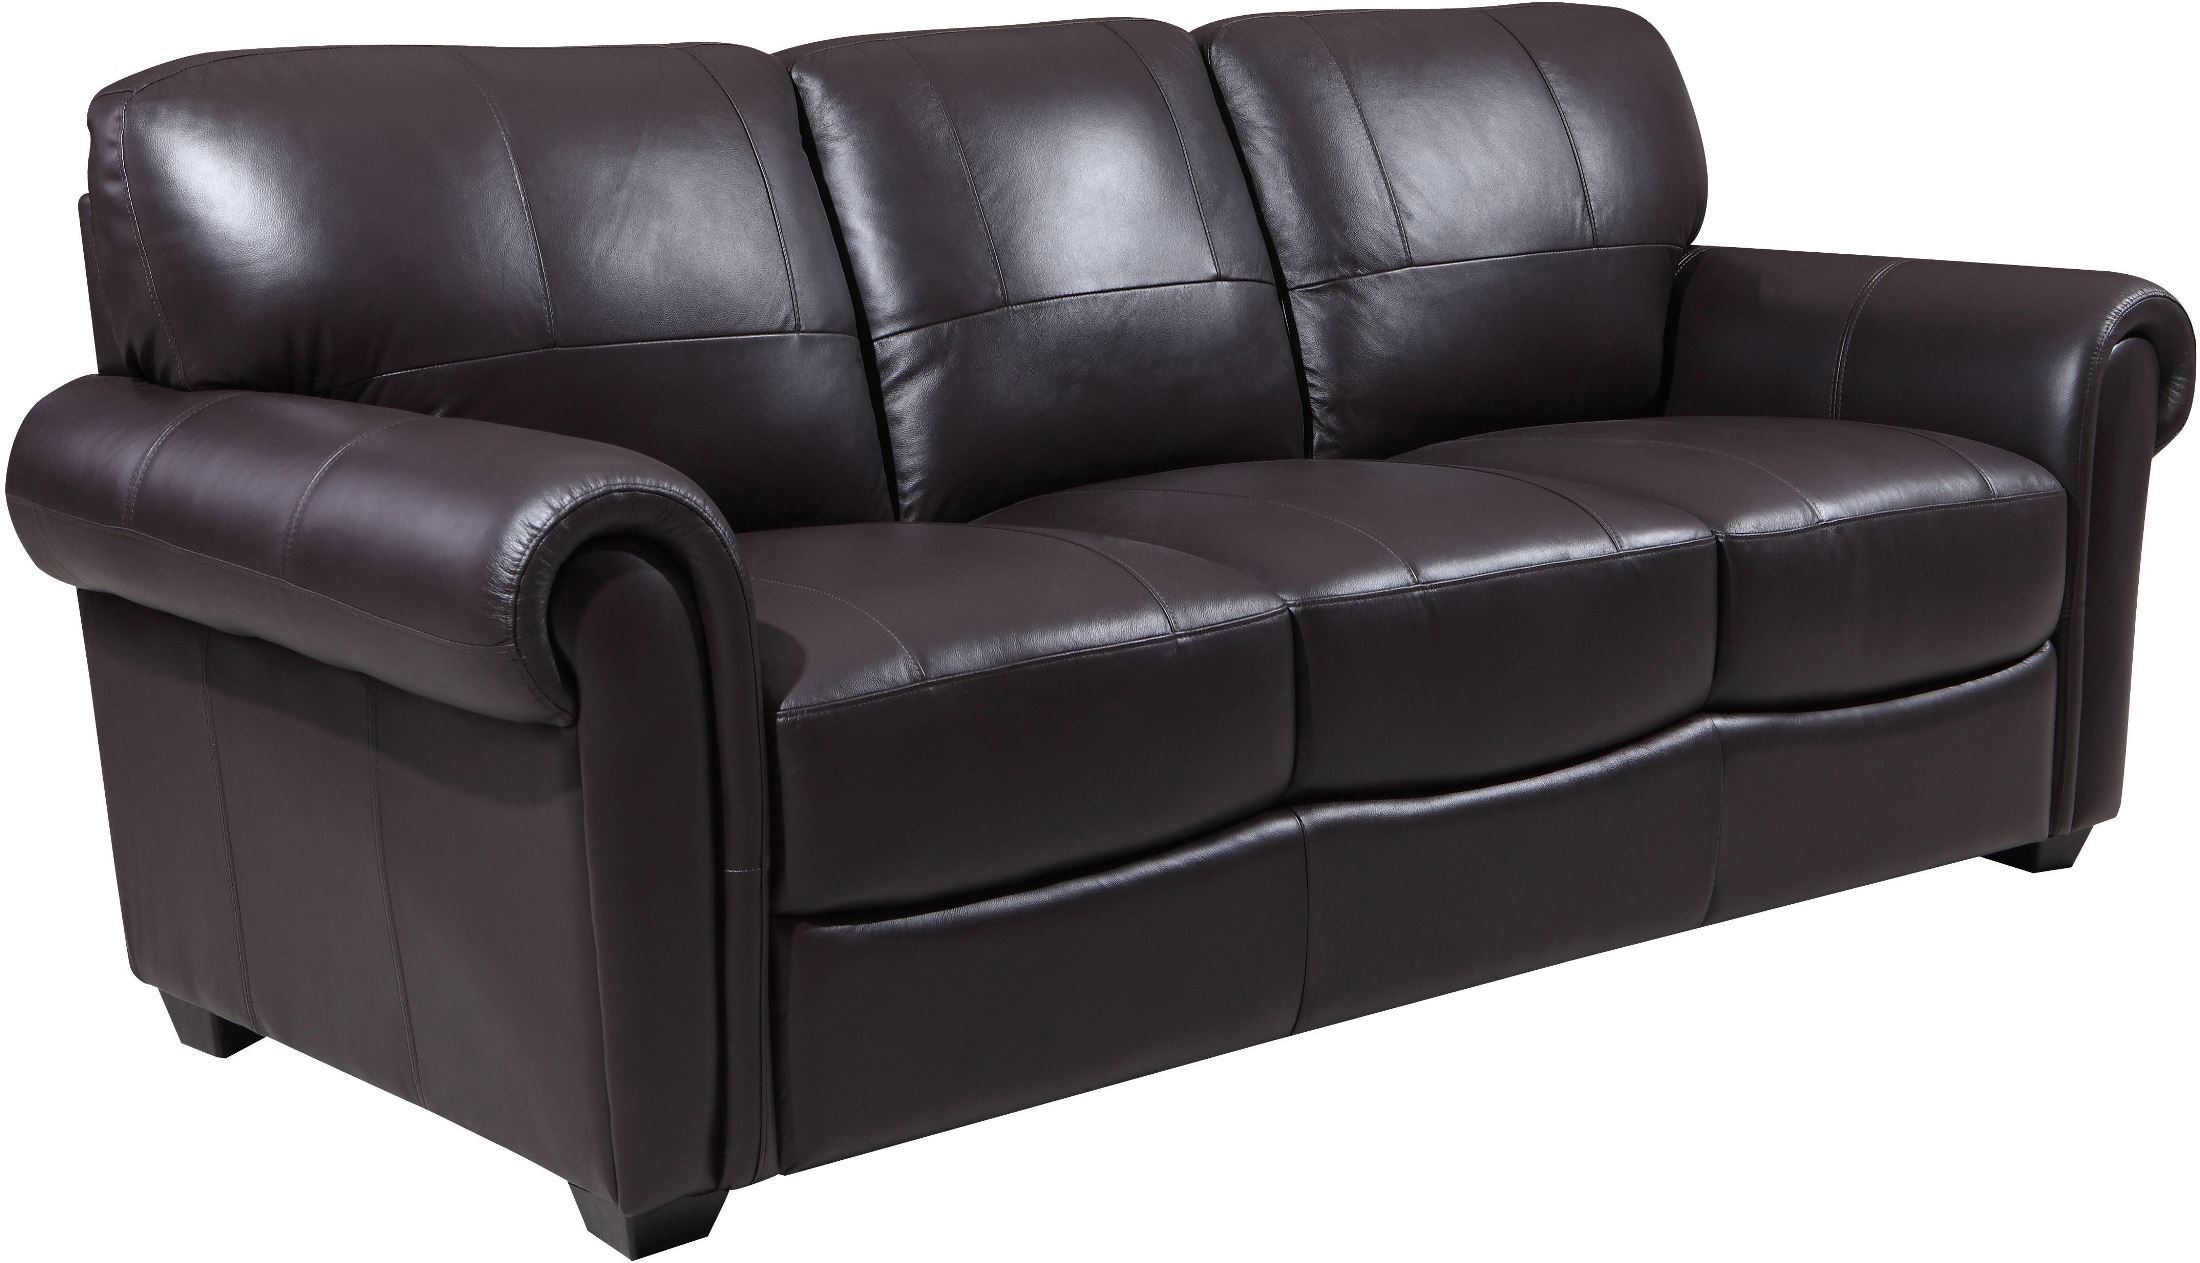 Shae Branson Dark Brown Leather Sofa From Luxe Leather Coleman Furniture